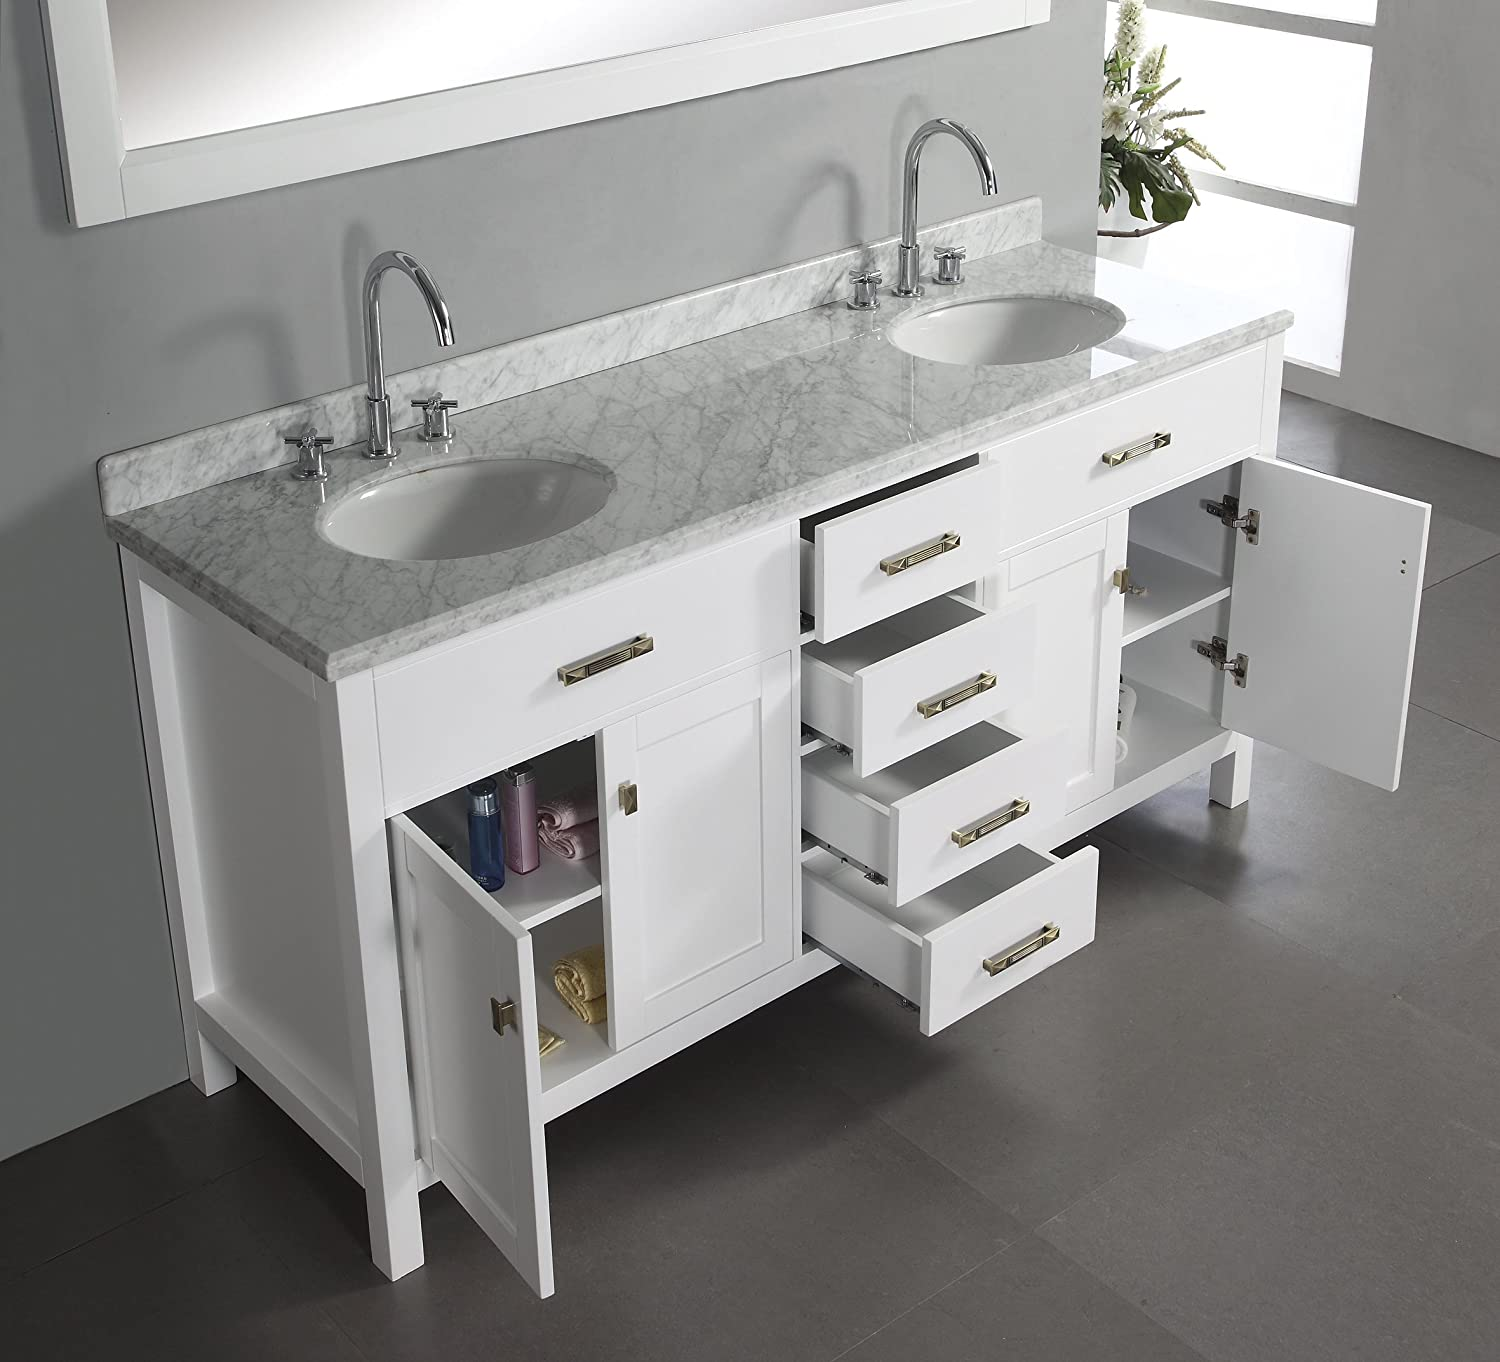 double sink vanity white. Virtu USA MD 2072 WMRO WH Caroline 72 Inch Double Sink Bathroom Vanity with  Italian White Carrera Marble Countertop and Mirror Finish Amazon com